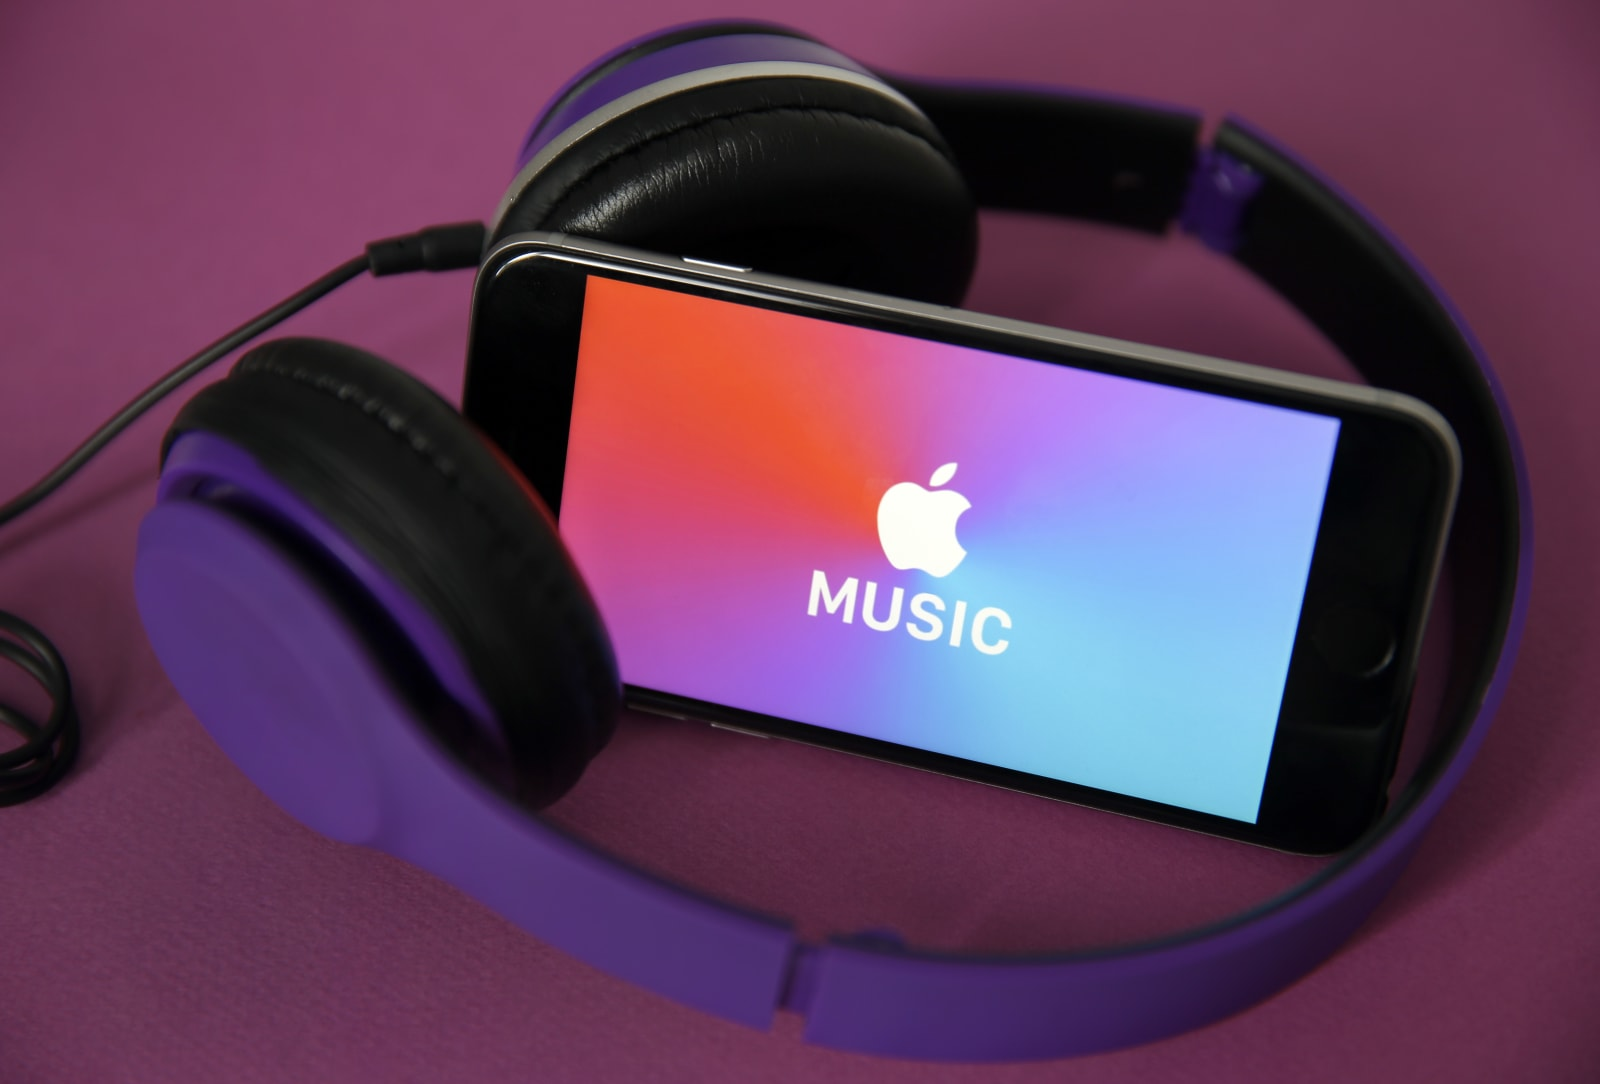 Apple Music's Digital Masters catalog helps you find high-quality tunes